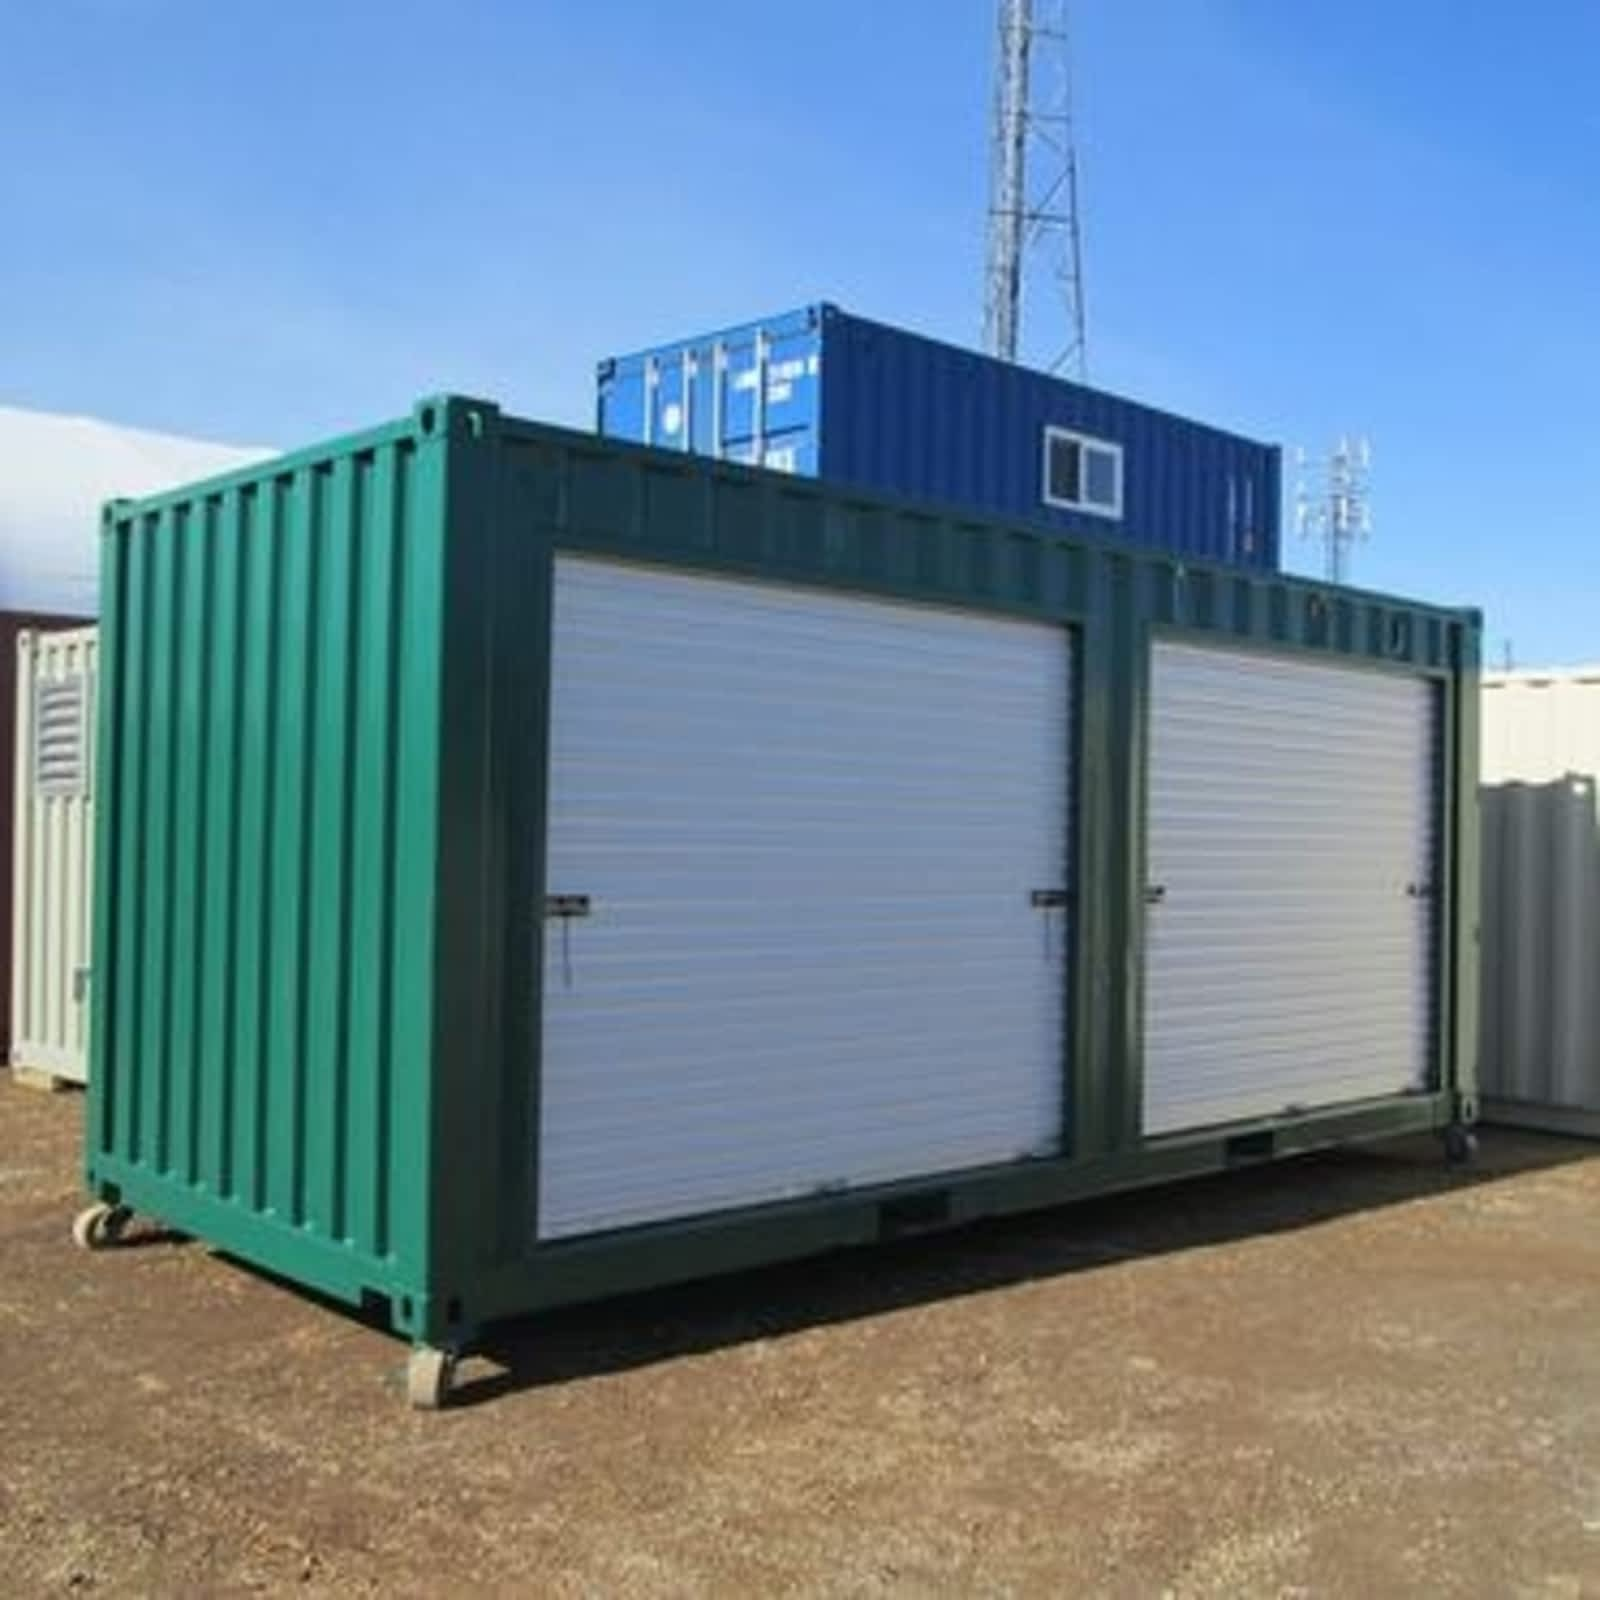 conversion up specialists for container sale view transport close ireland office window walcon and shipping uk